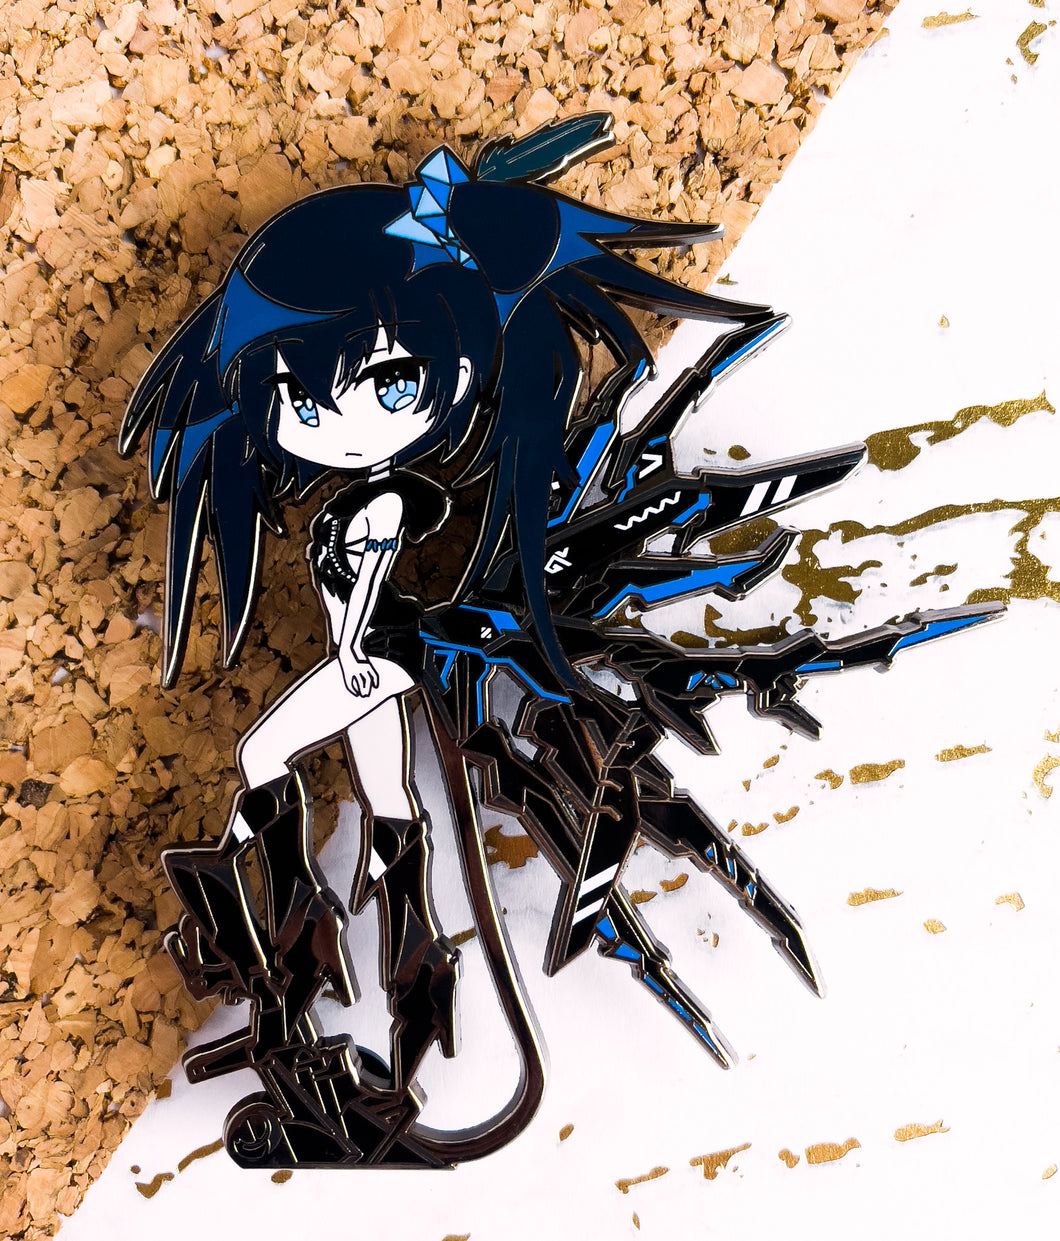 [PRE-ORDER] Black Rock Shooter - Inexhaustible ver. 4